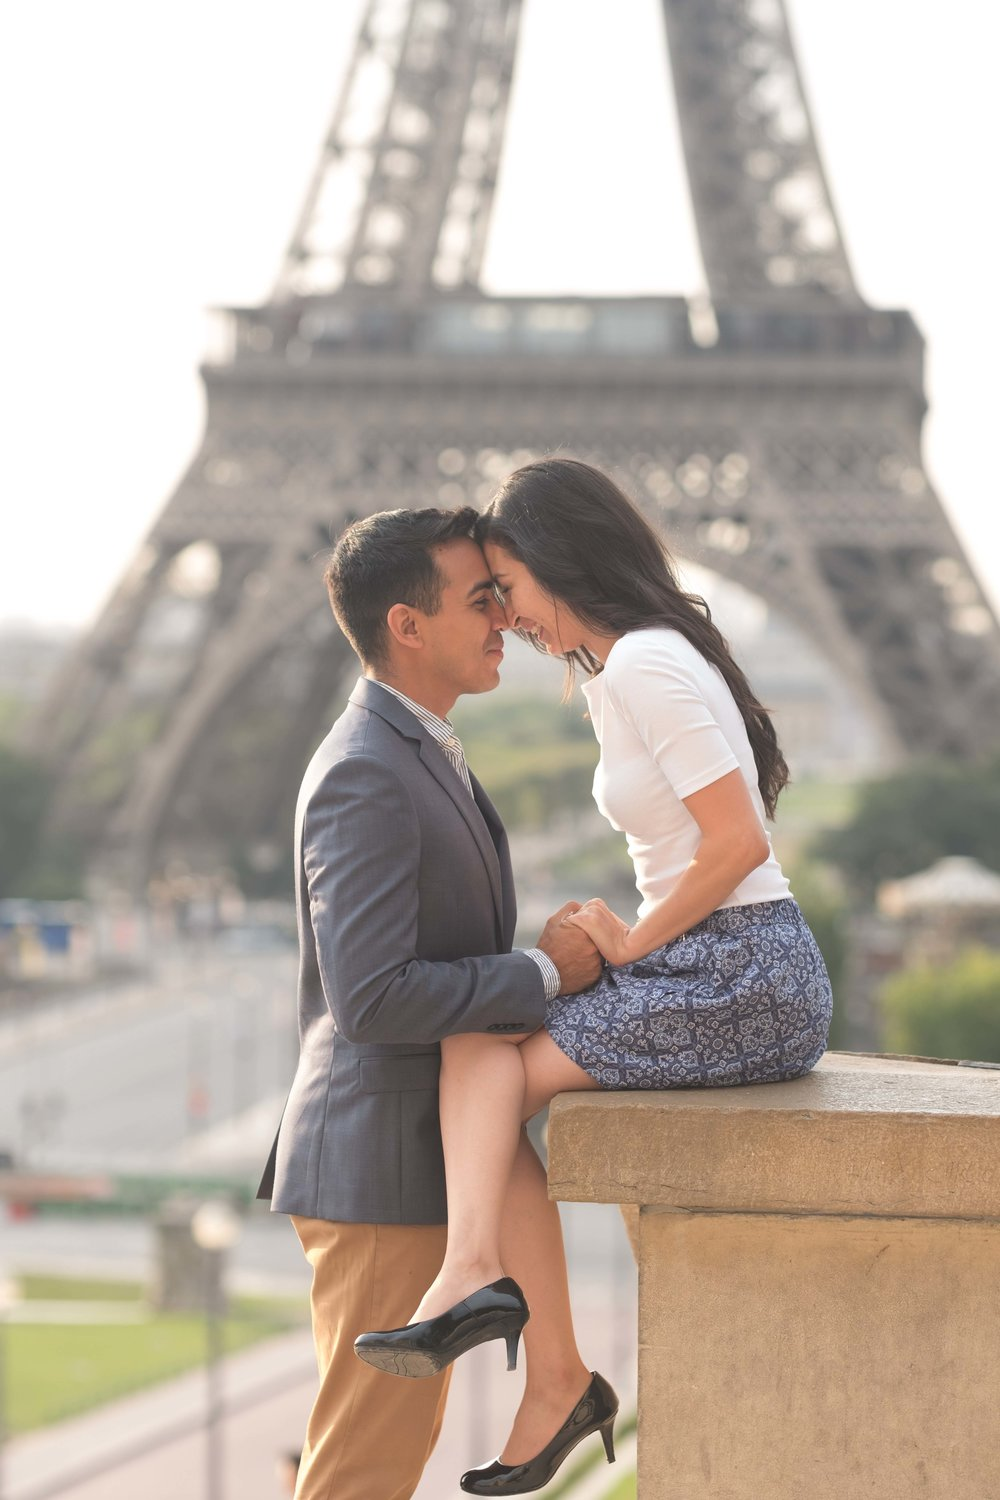 Couple laughing at Eiffel Tower in Paris